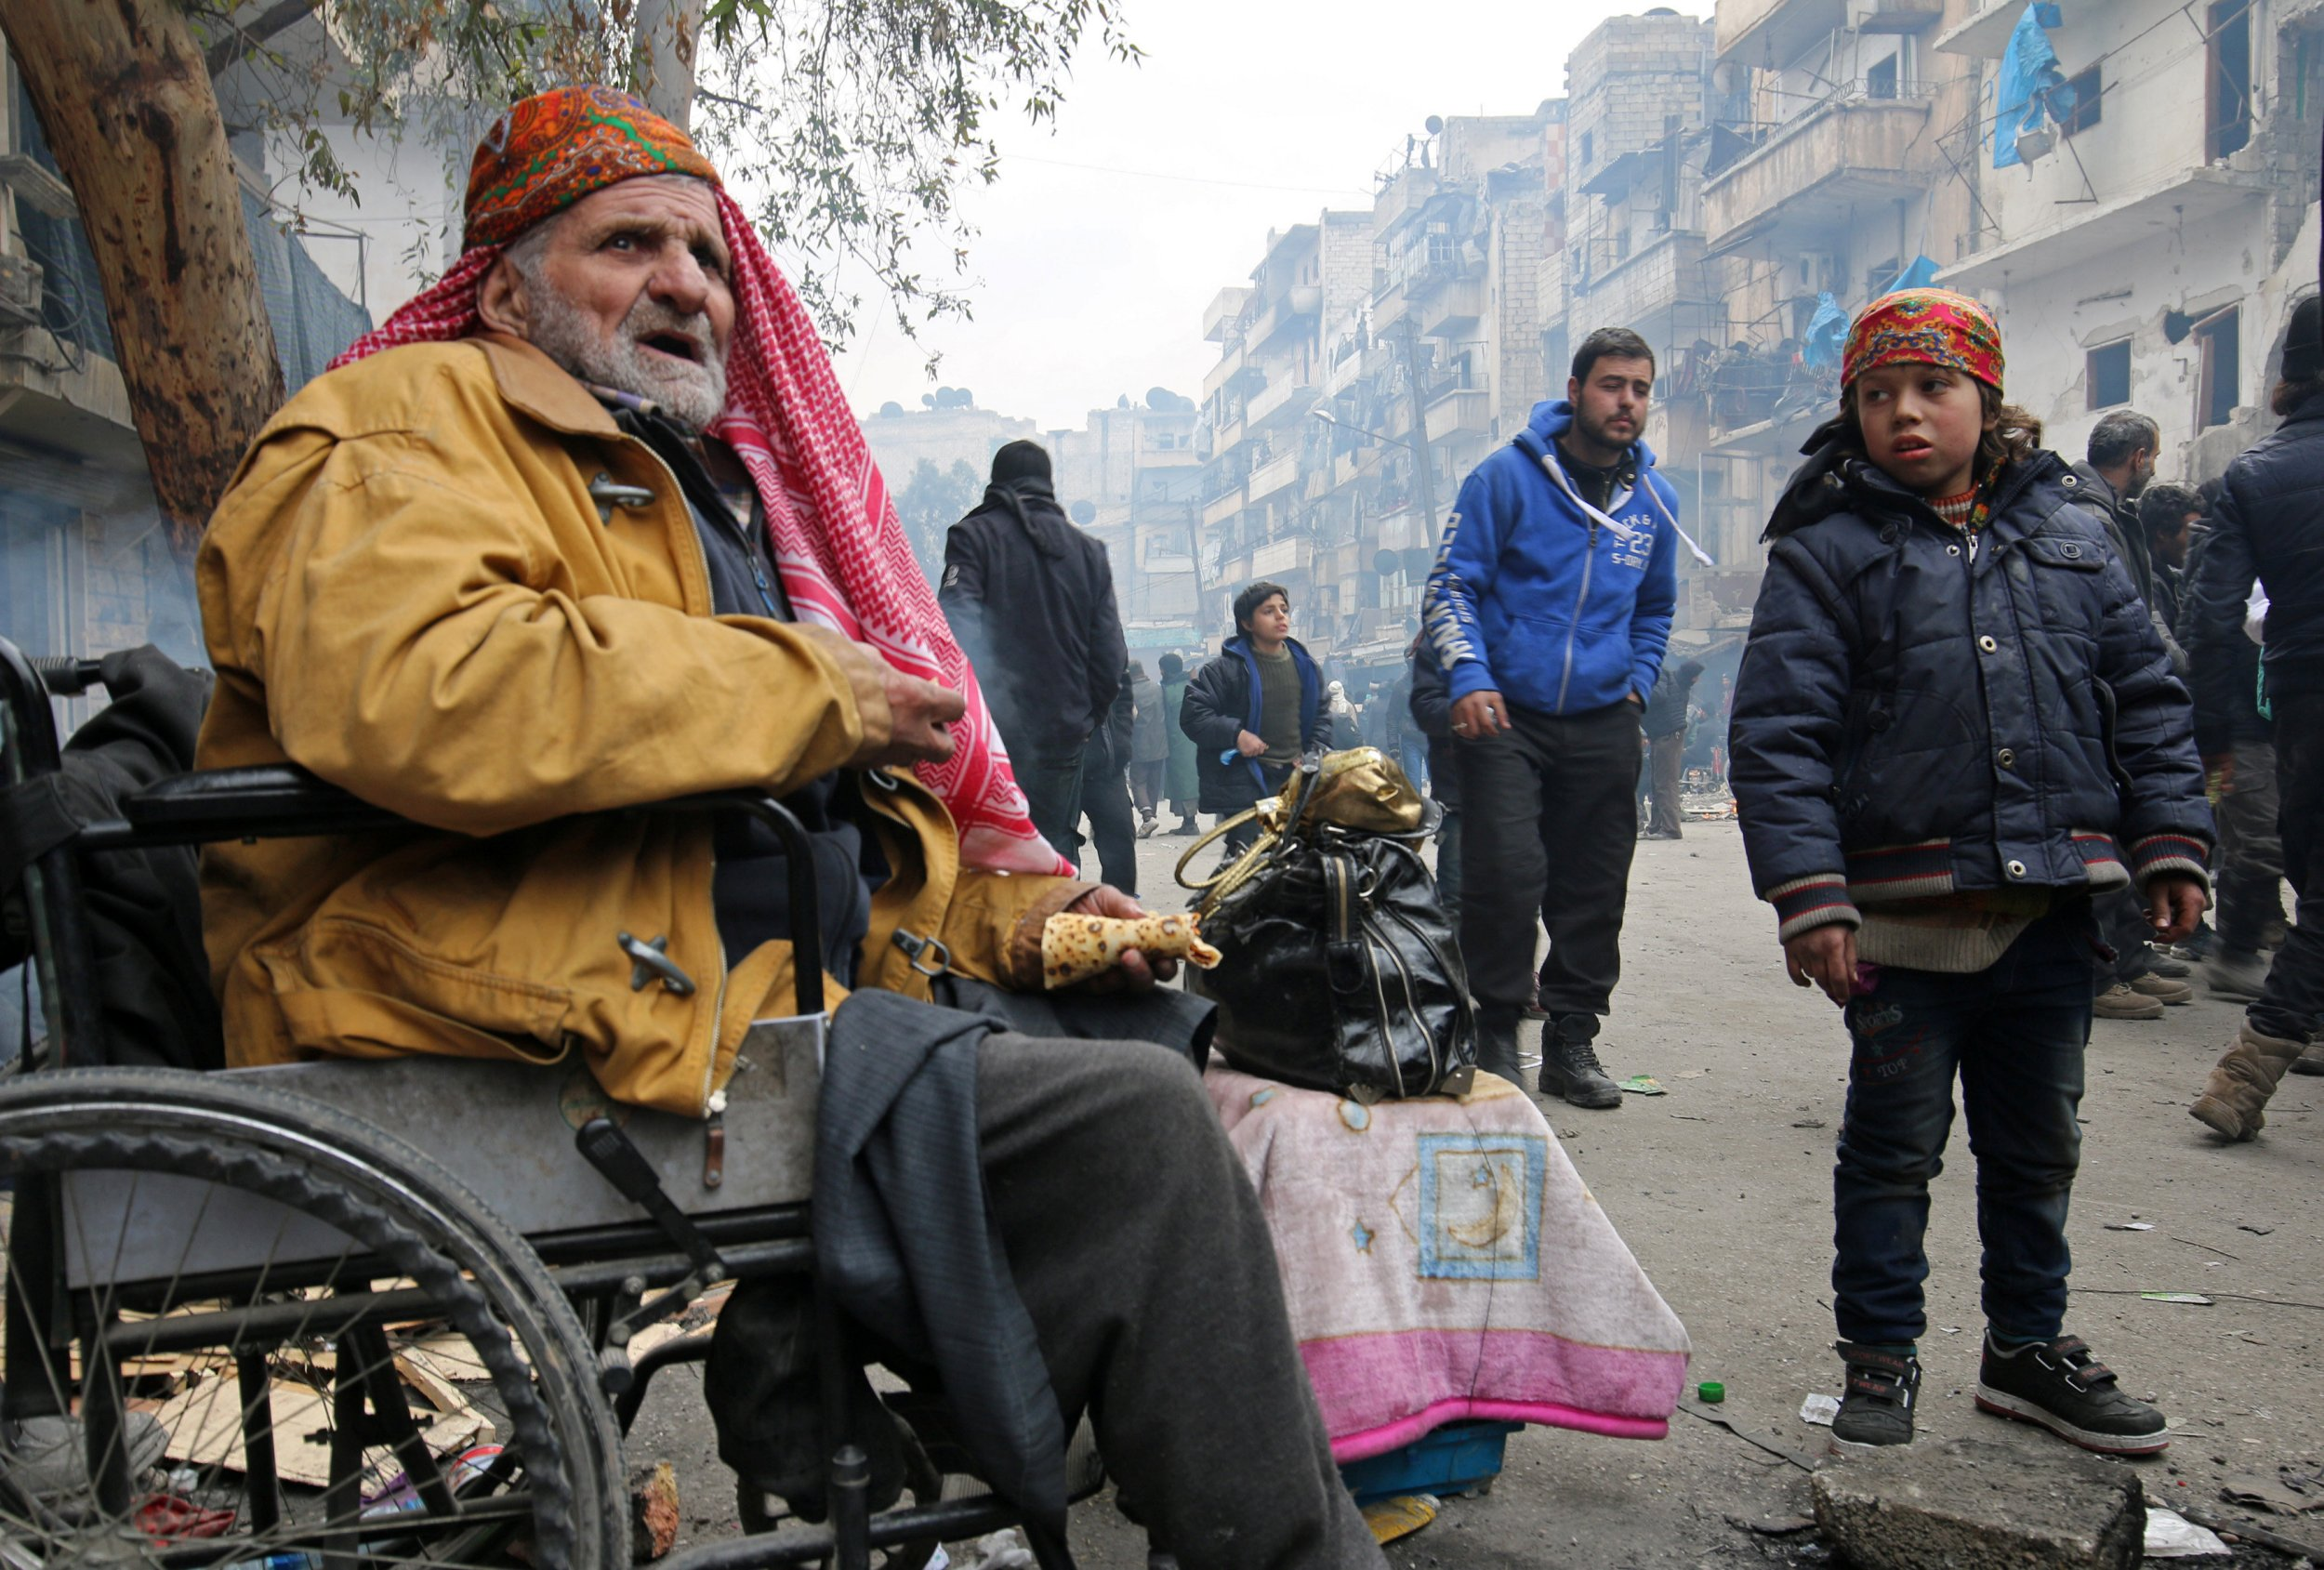 Thousands in Aleppo wait in freezing cold for evacuation to resume